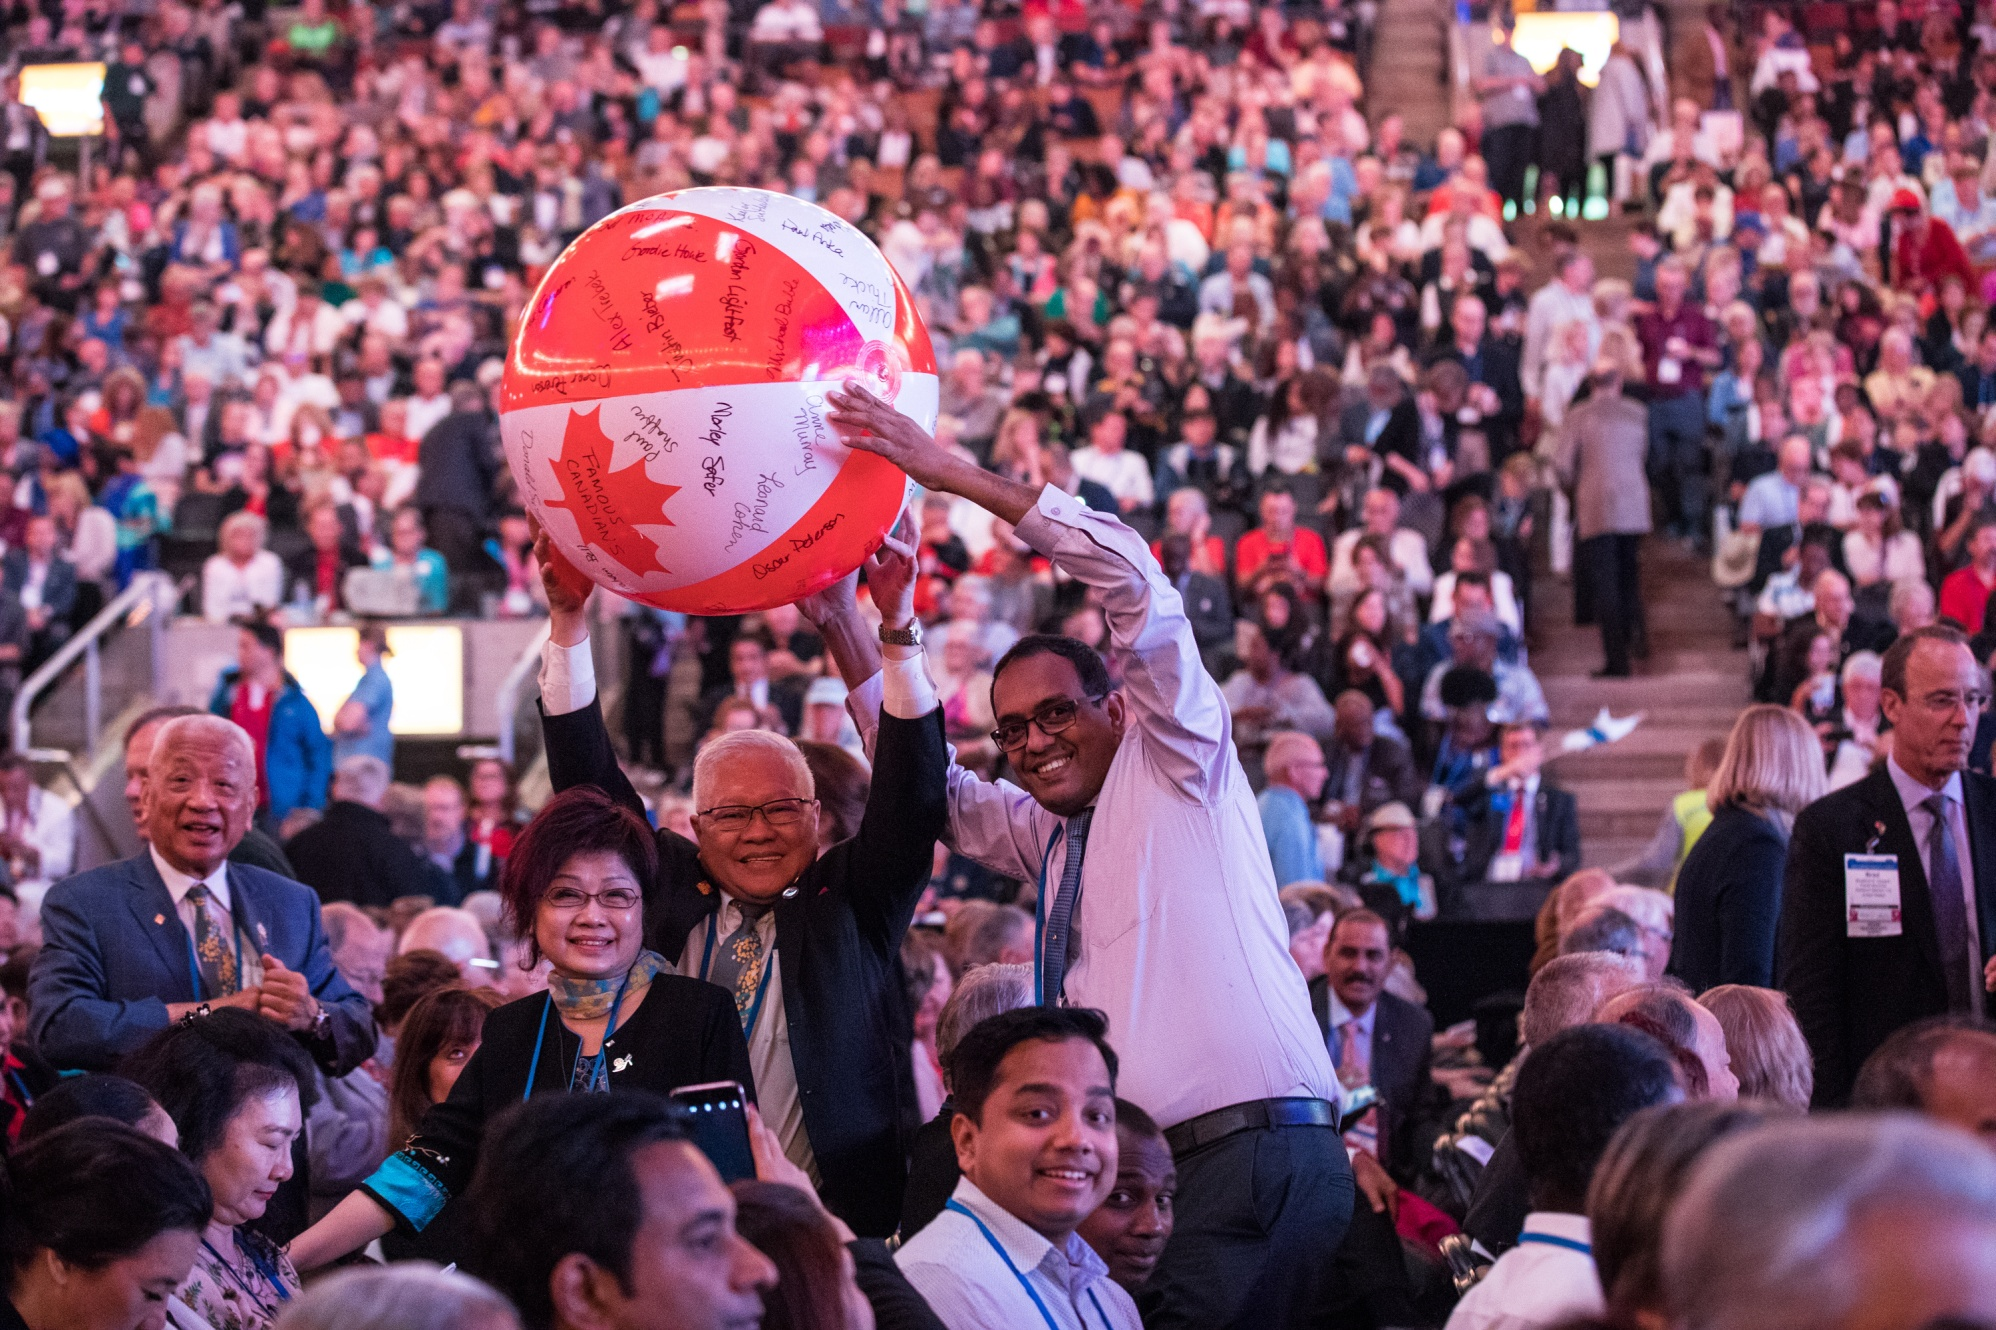 Opening ceremony, Rotary International Convention, 24 June 2018. Toronto, Ontario, Canada.